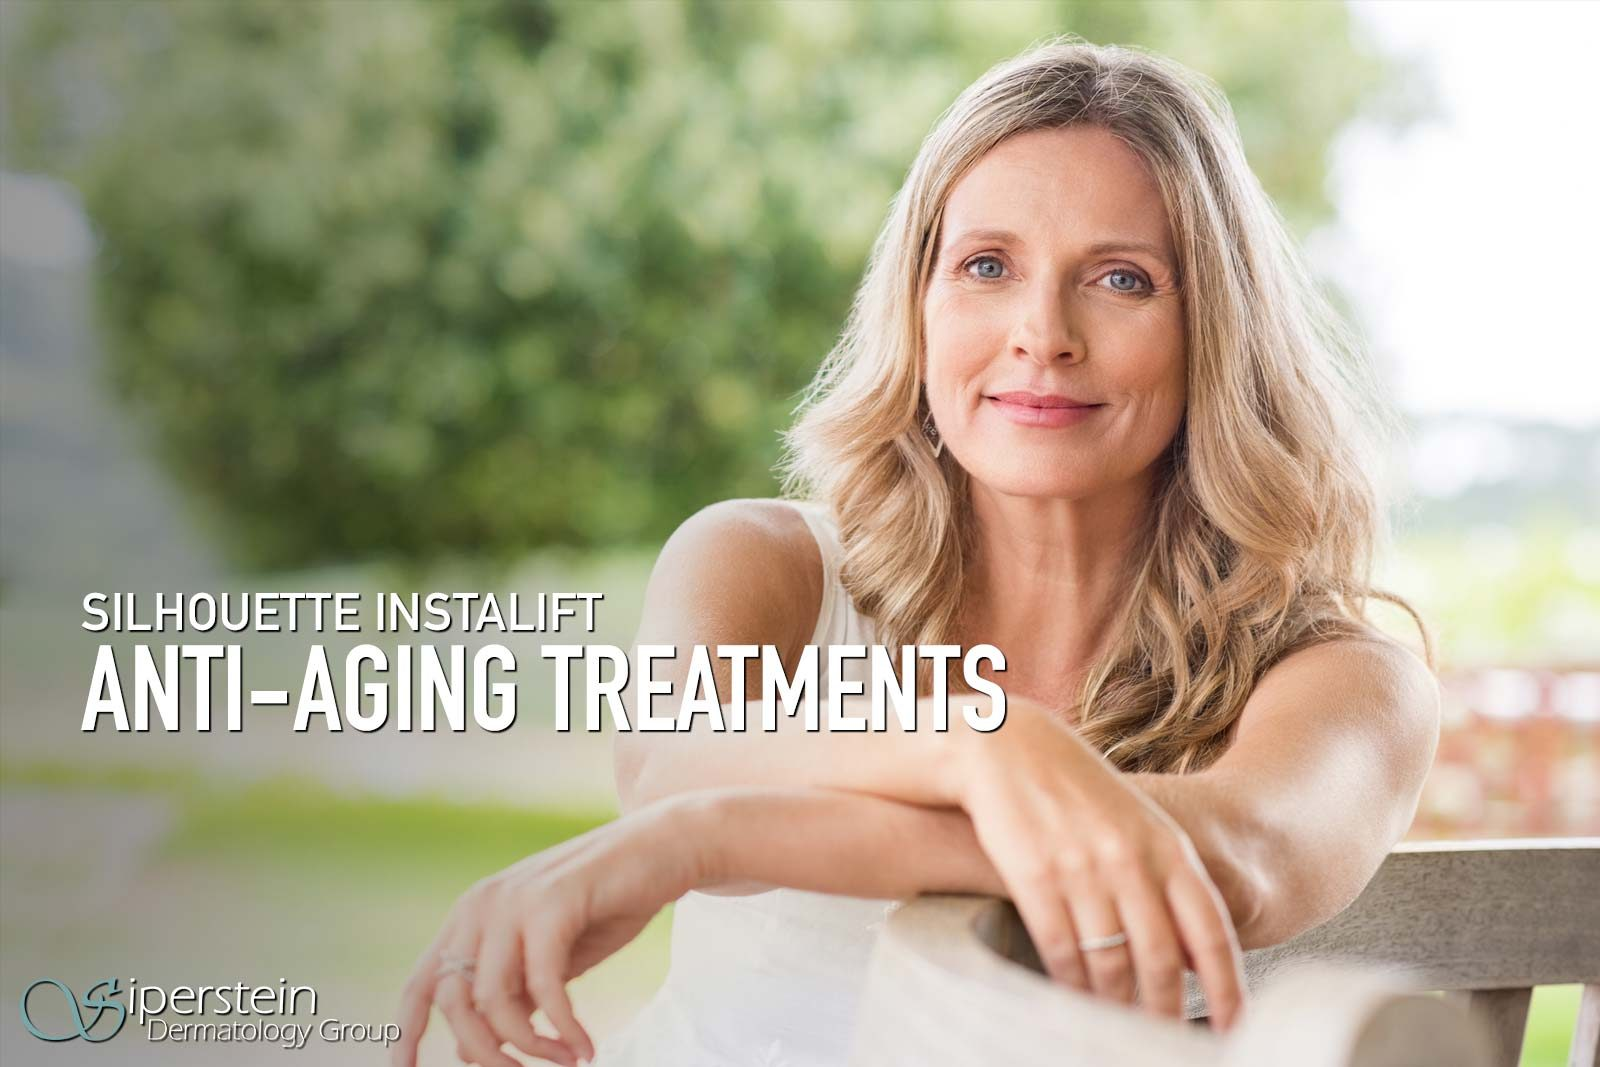 Is The Silhouette Anti Aging Treatment Right For You